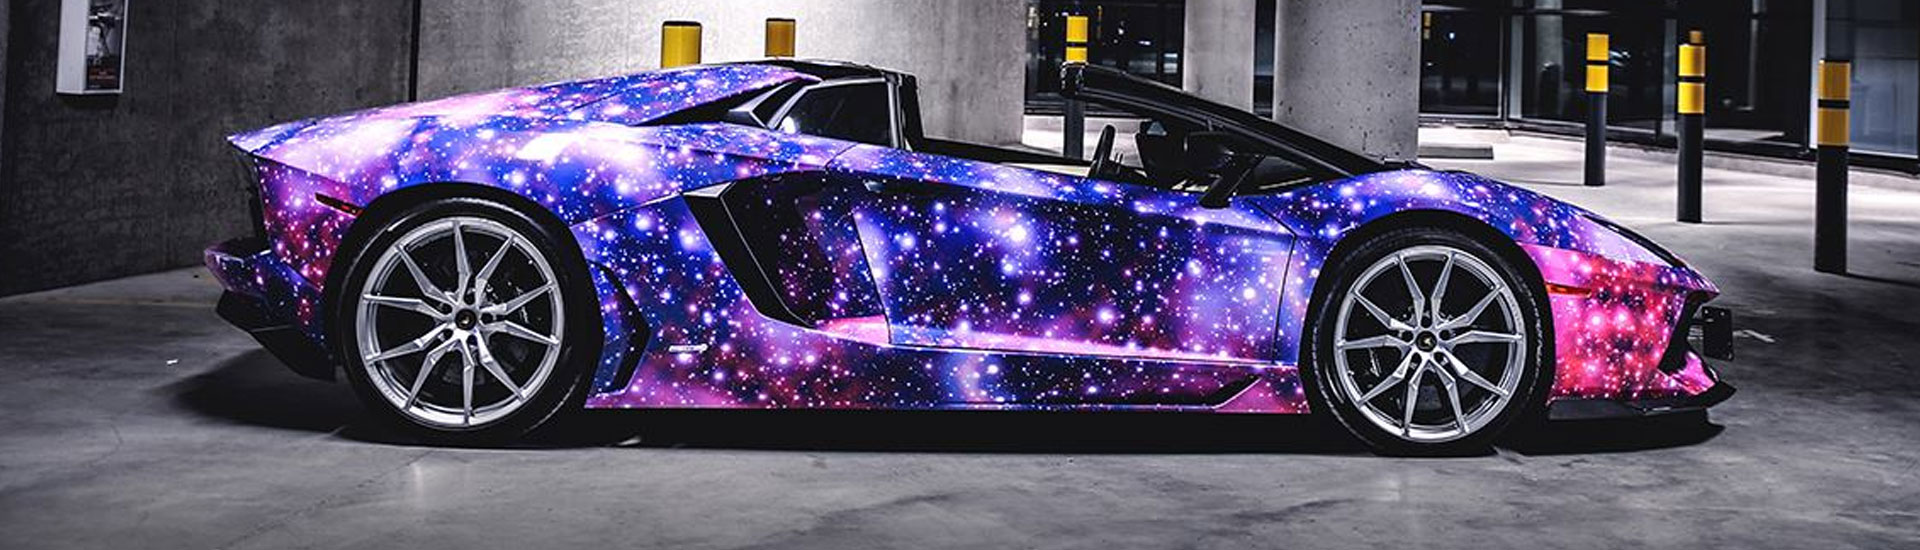 Car Wrap Vinyl >> Galaxy Vinyl Wrap | Galaxy Car Wraps